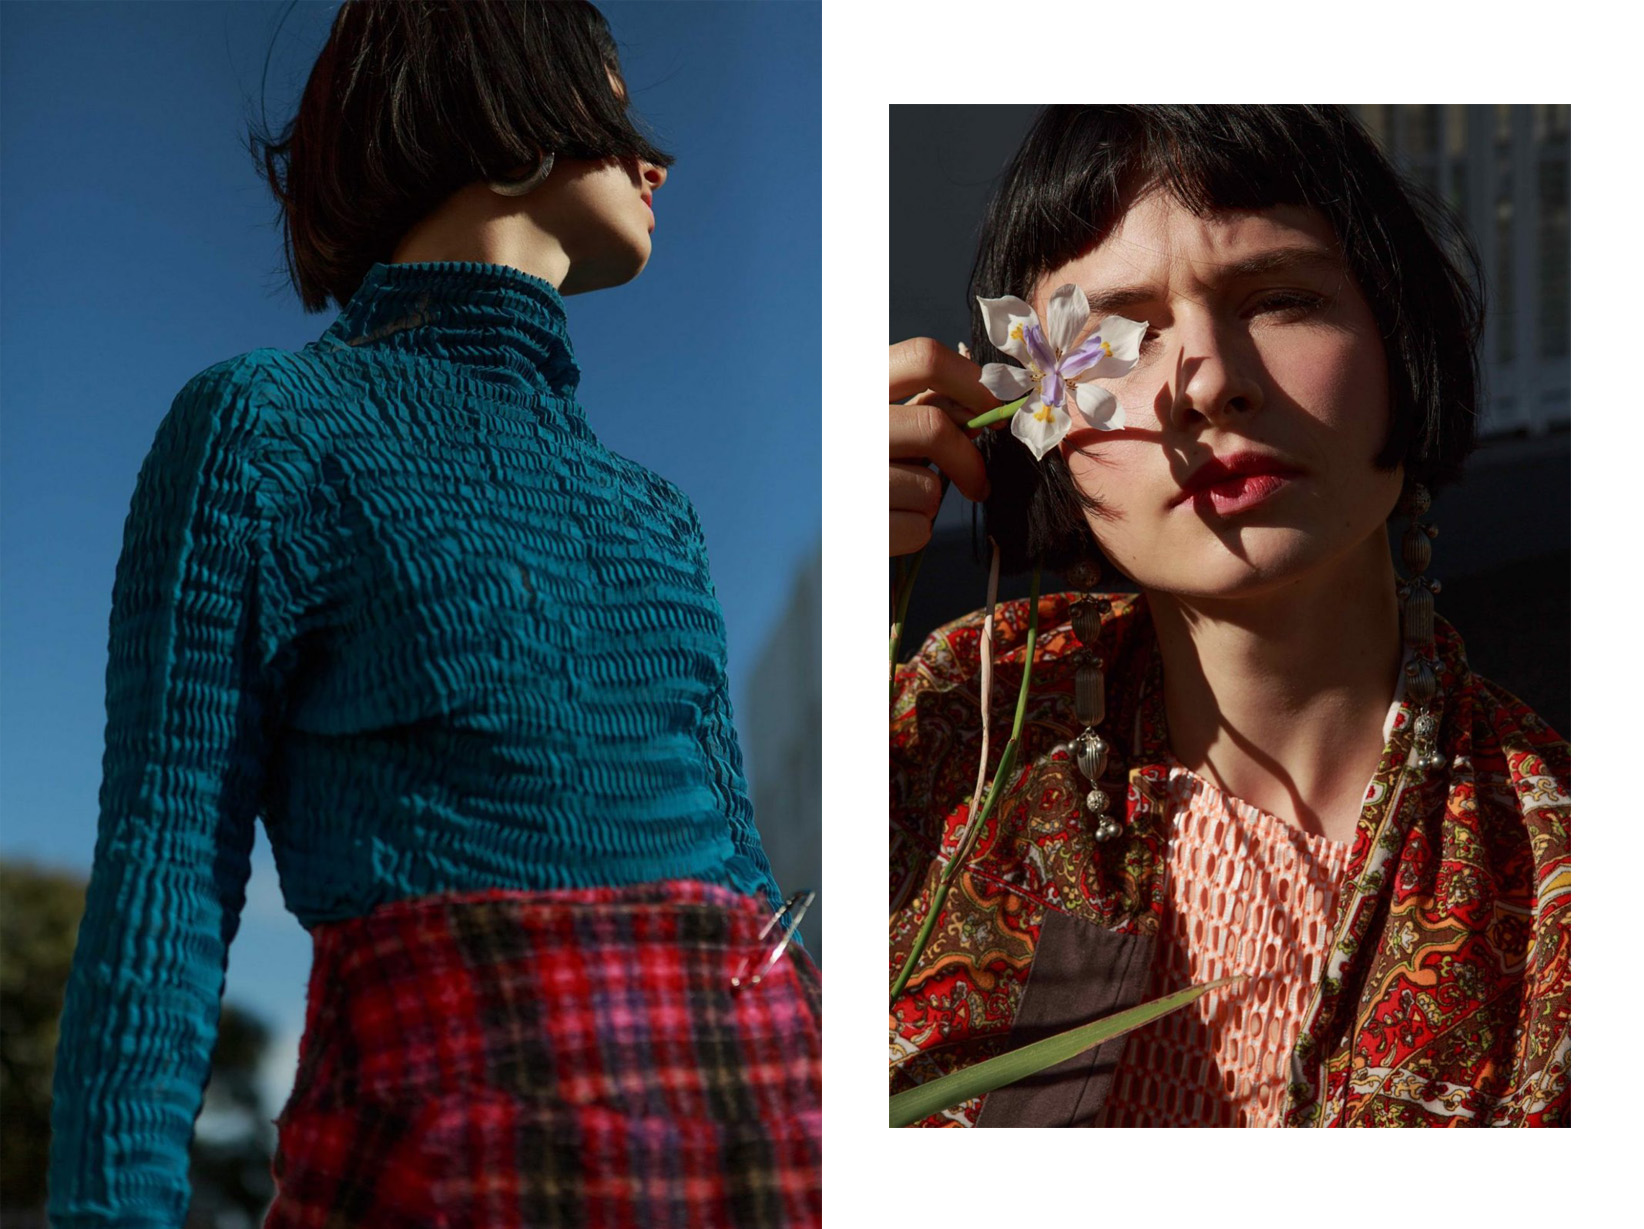 Ayoama Archive , editorial by Intent Journal, photography by Amelia J Dowd.